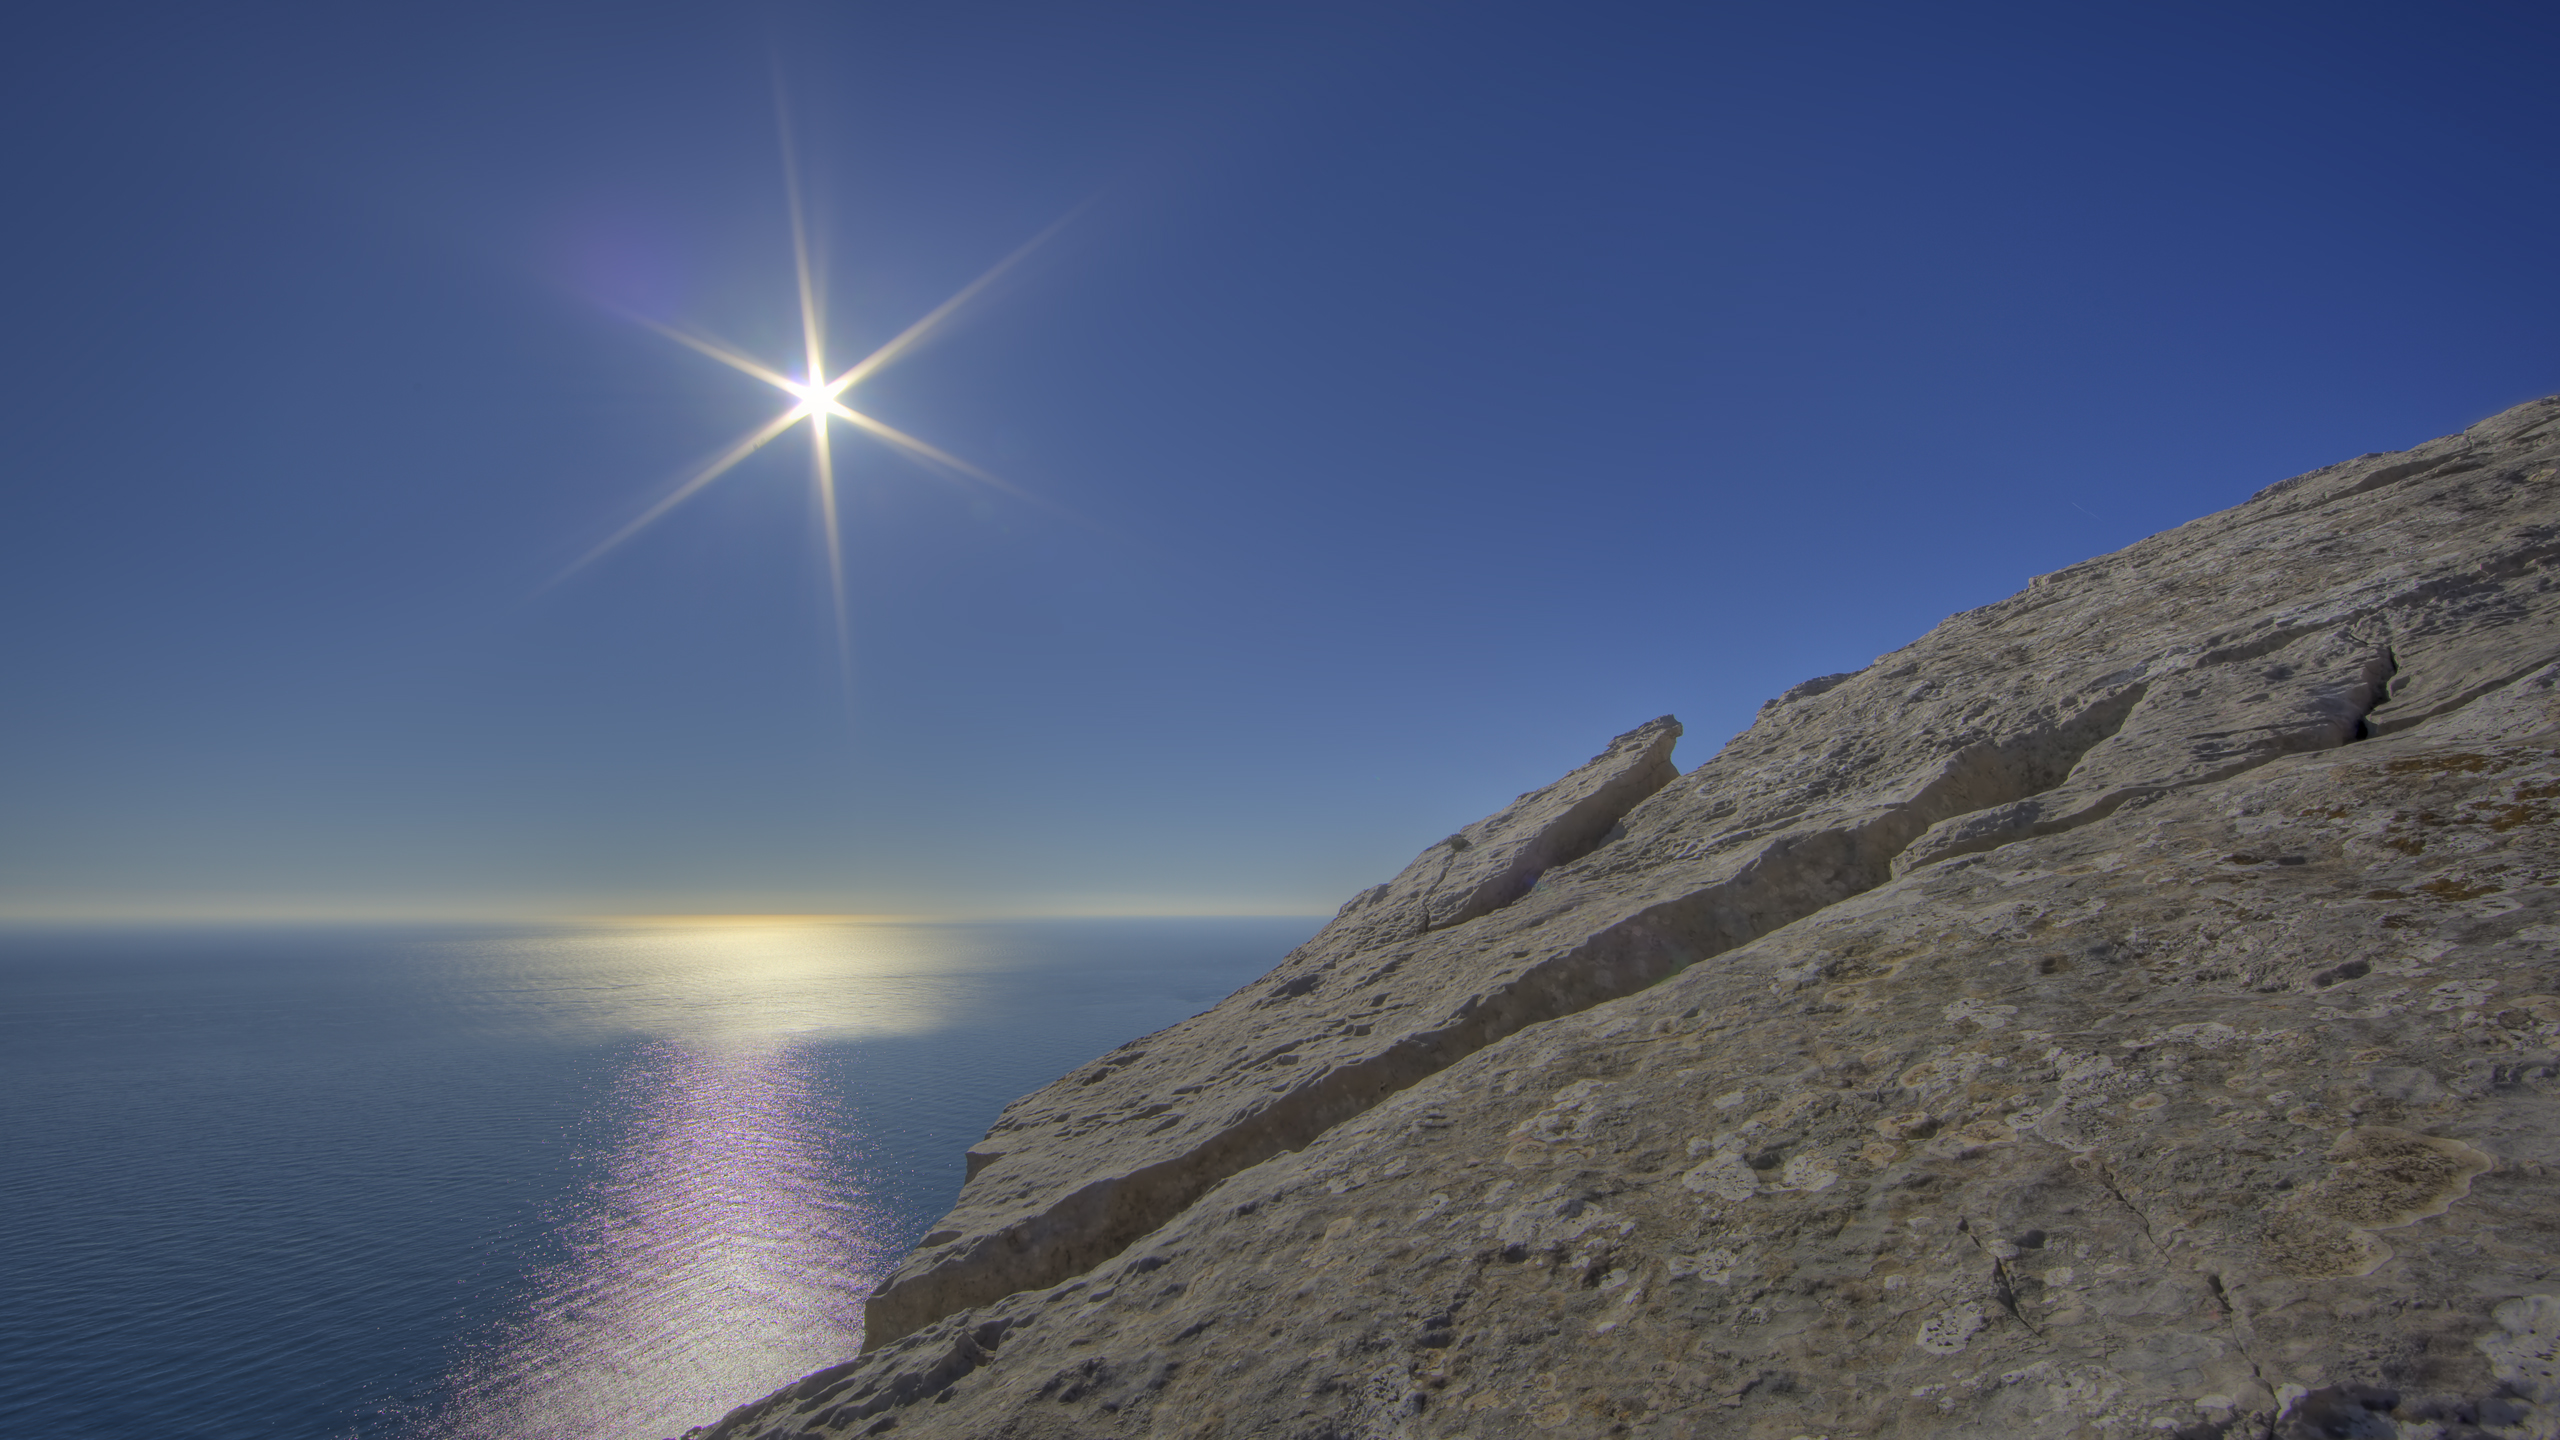 Earth - Ocean  - Star - Rock - Landscape Wallpaper